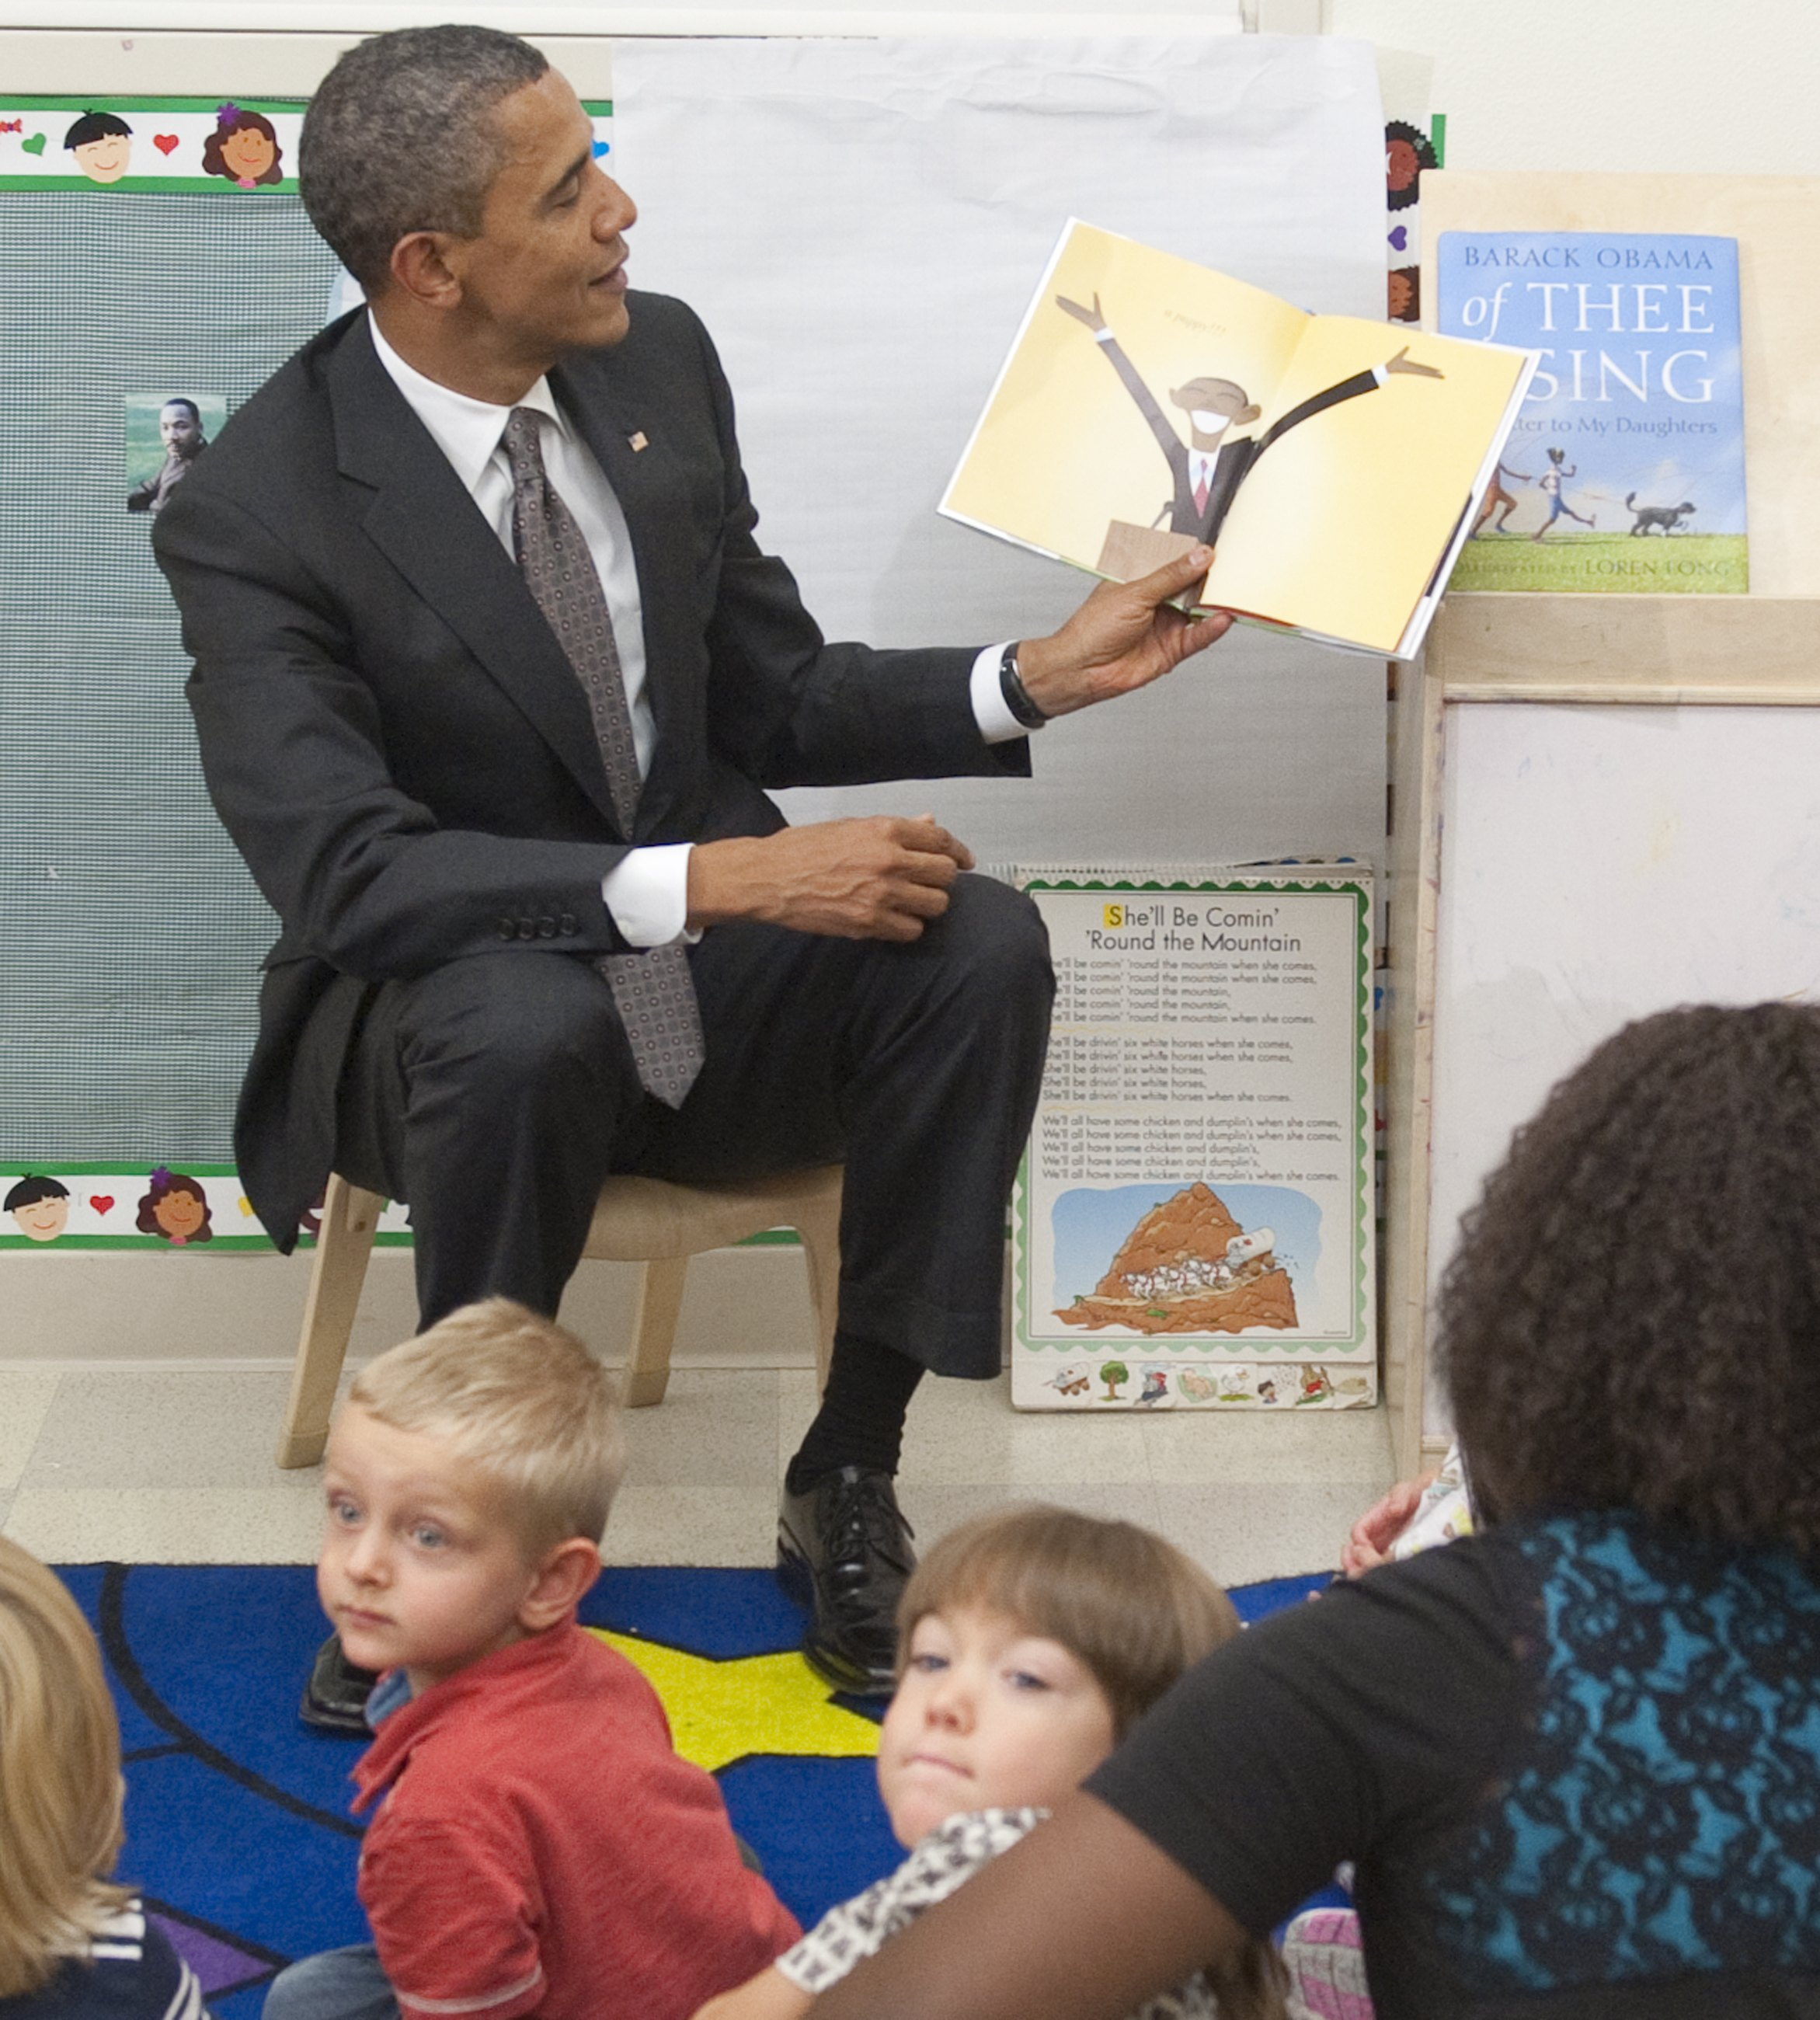 US President Barack Obama holds up a boo